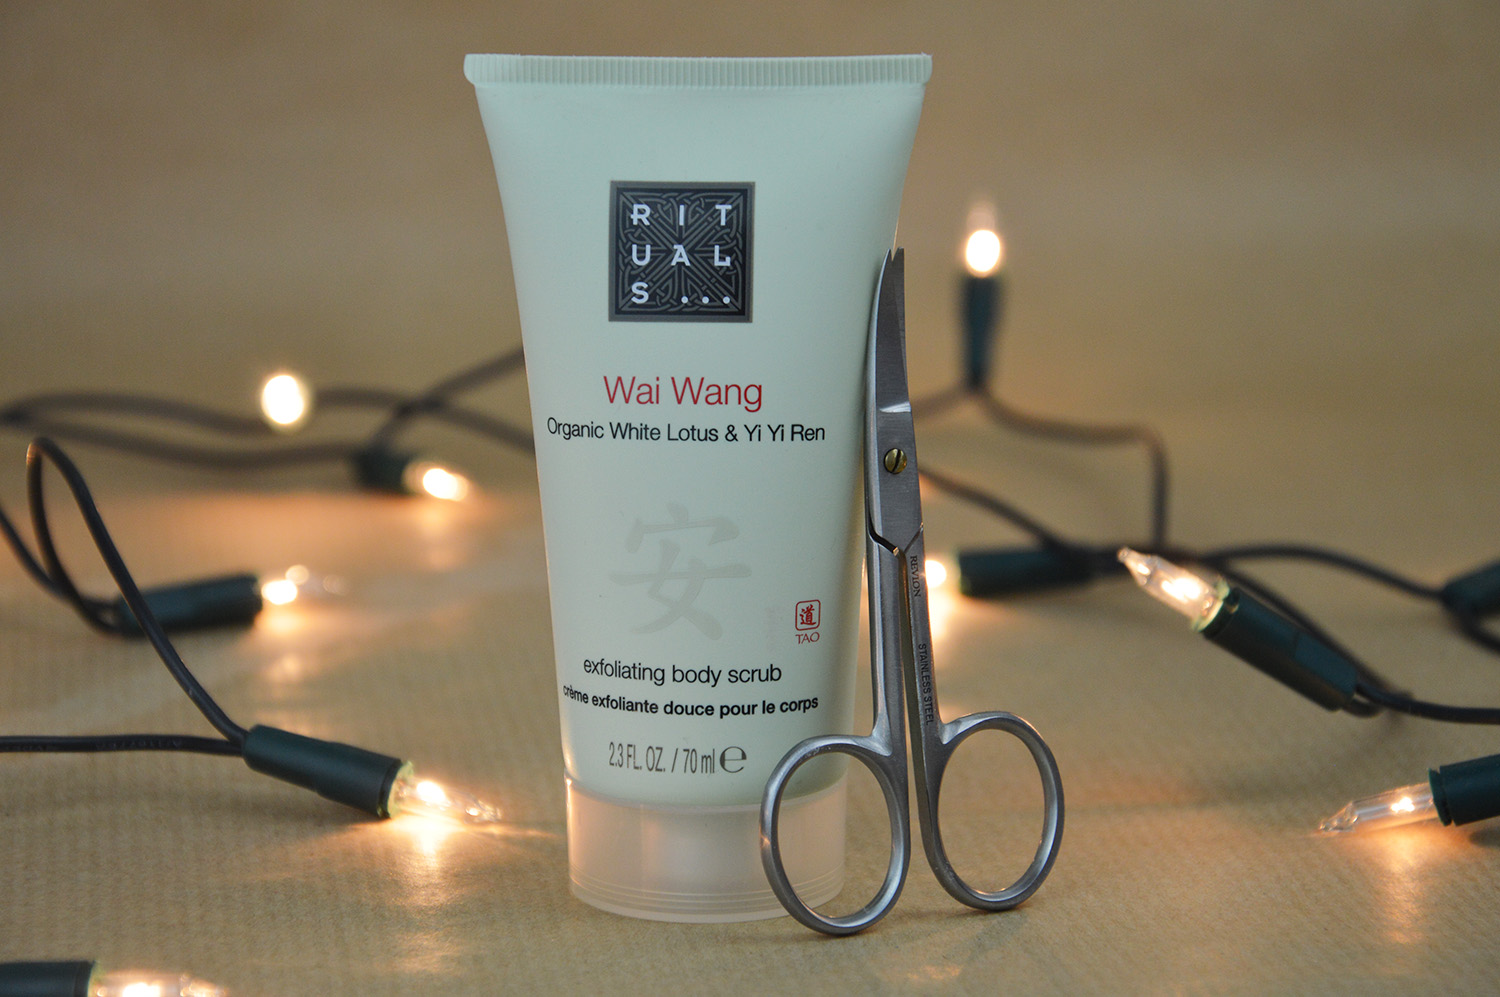 www.advance-your-style.de, Beautyblog, Berlin, Kosmetik, Hautpflege, Winter, Hände, trockene Hände, Let's Talk About Beauty, RITUALS Body Scrub, Wai Wang Organic, test